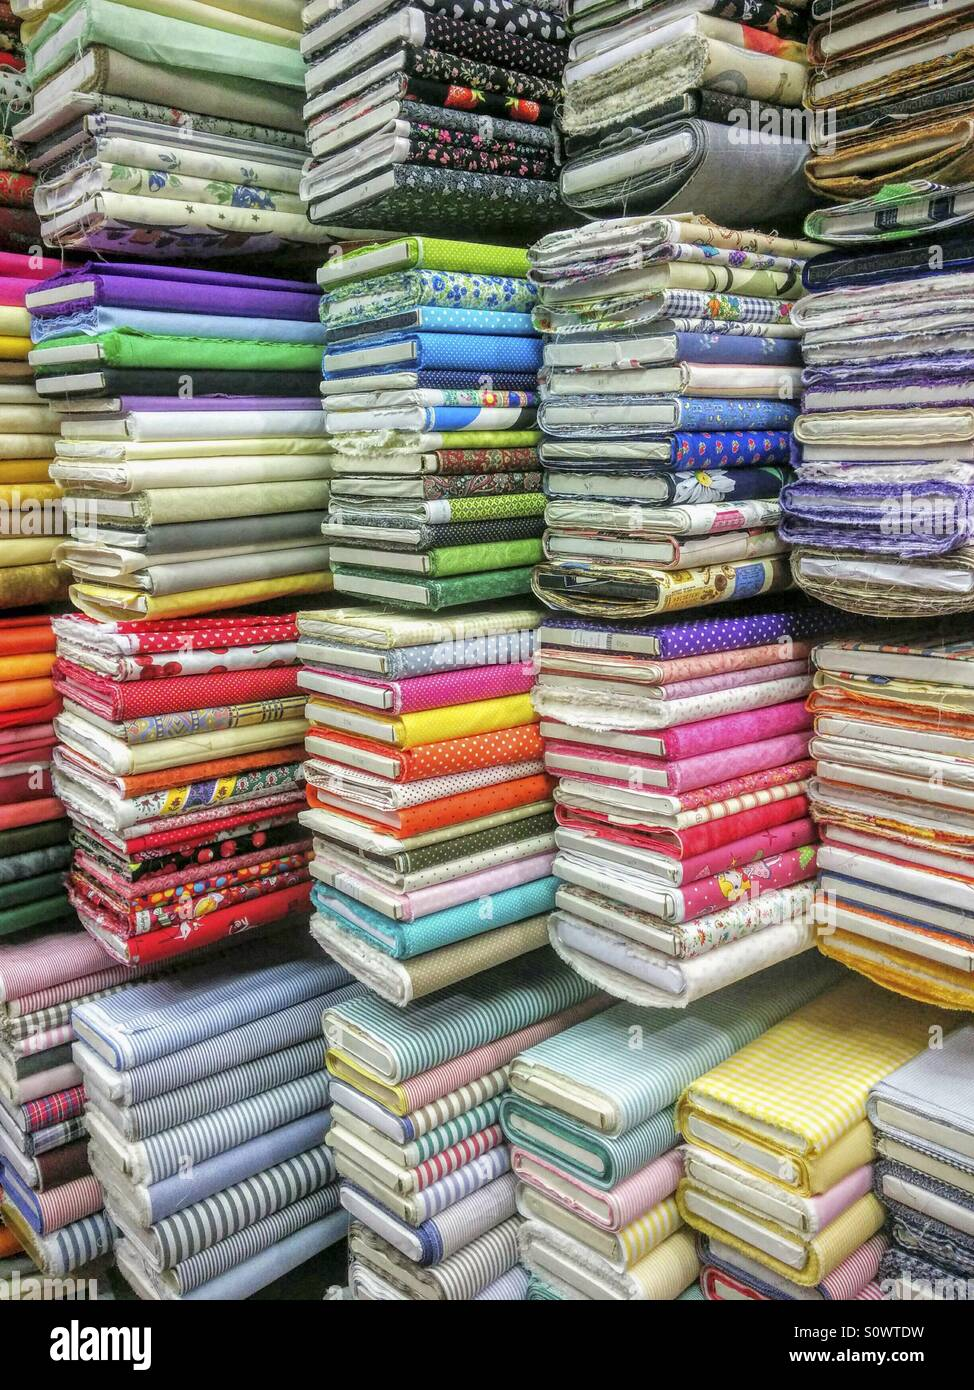 Fabrics in a store. - Stock Image